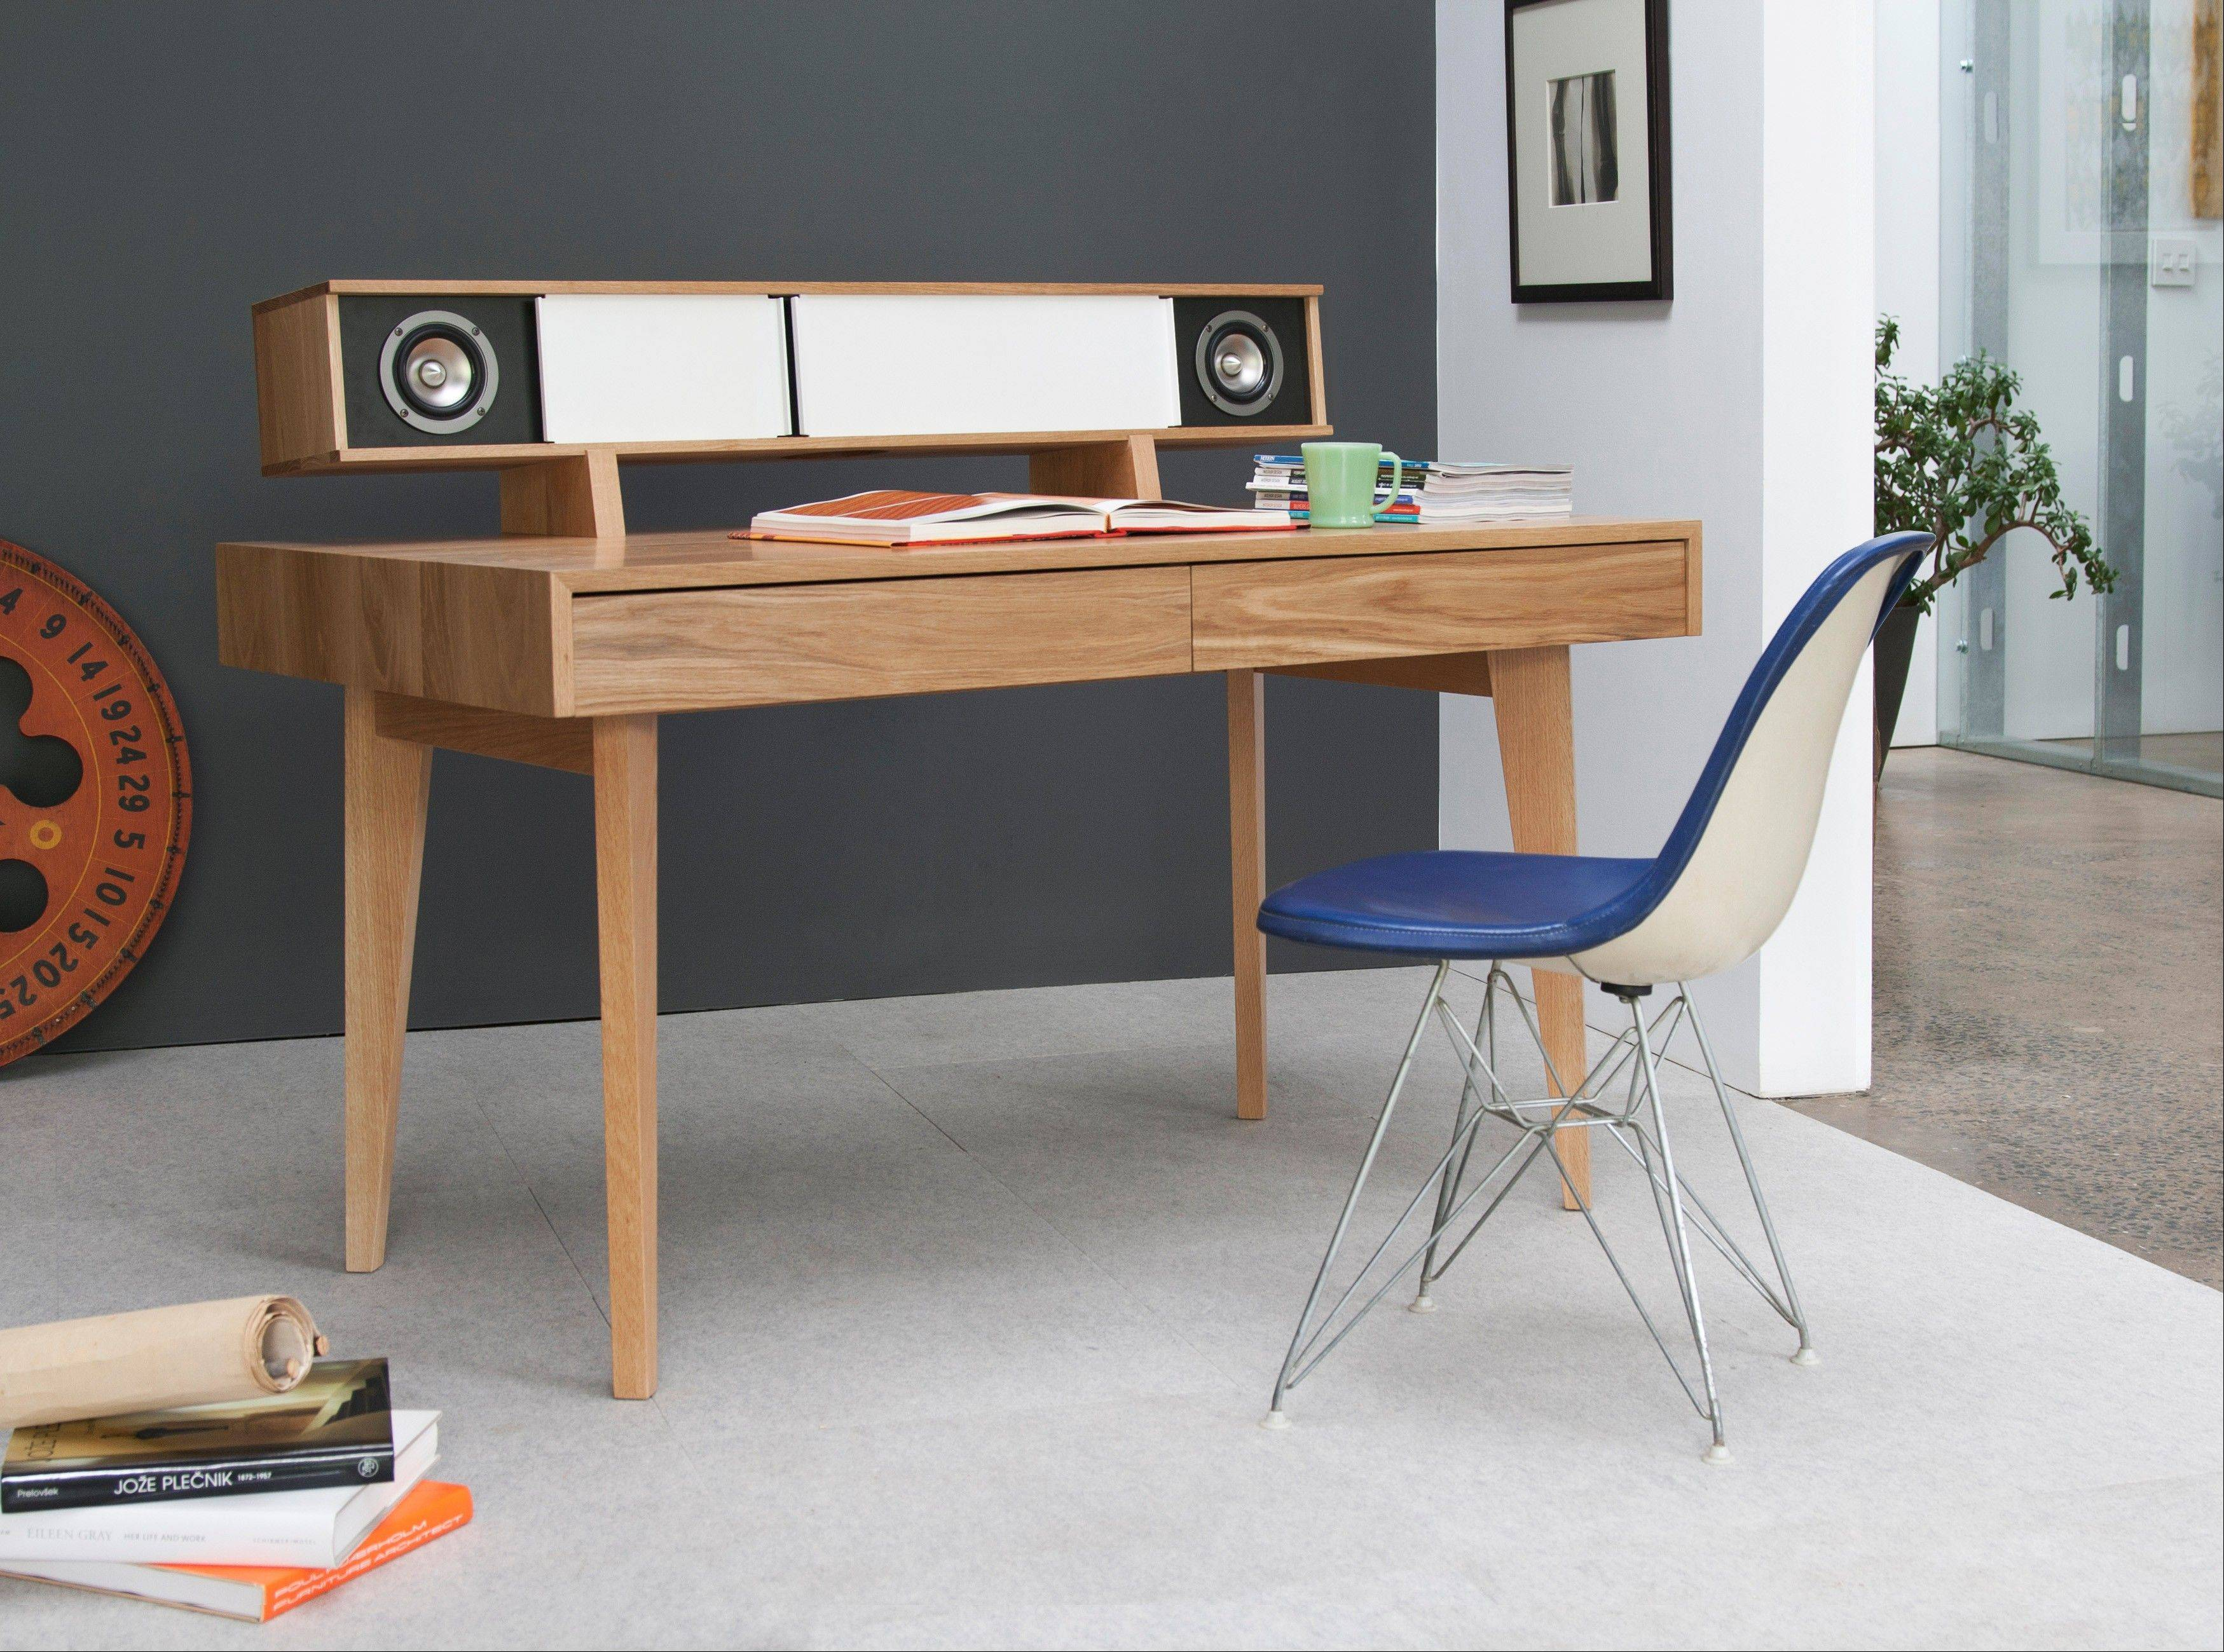 The integration of technology into home decor has come a long way. Symbol's Audio Desk with high quality speakers built into a sleek desk, available in maple, walnut, oak or cherry.